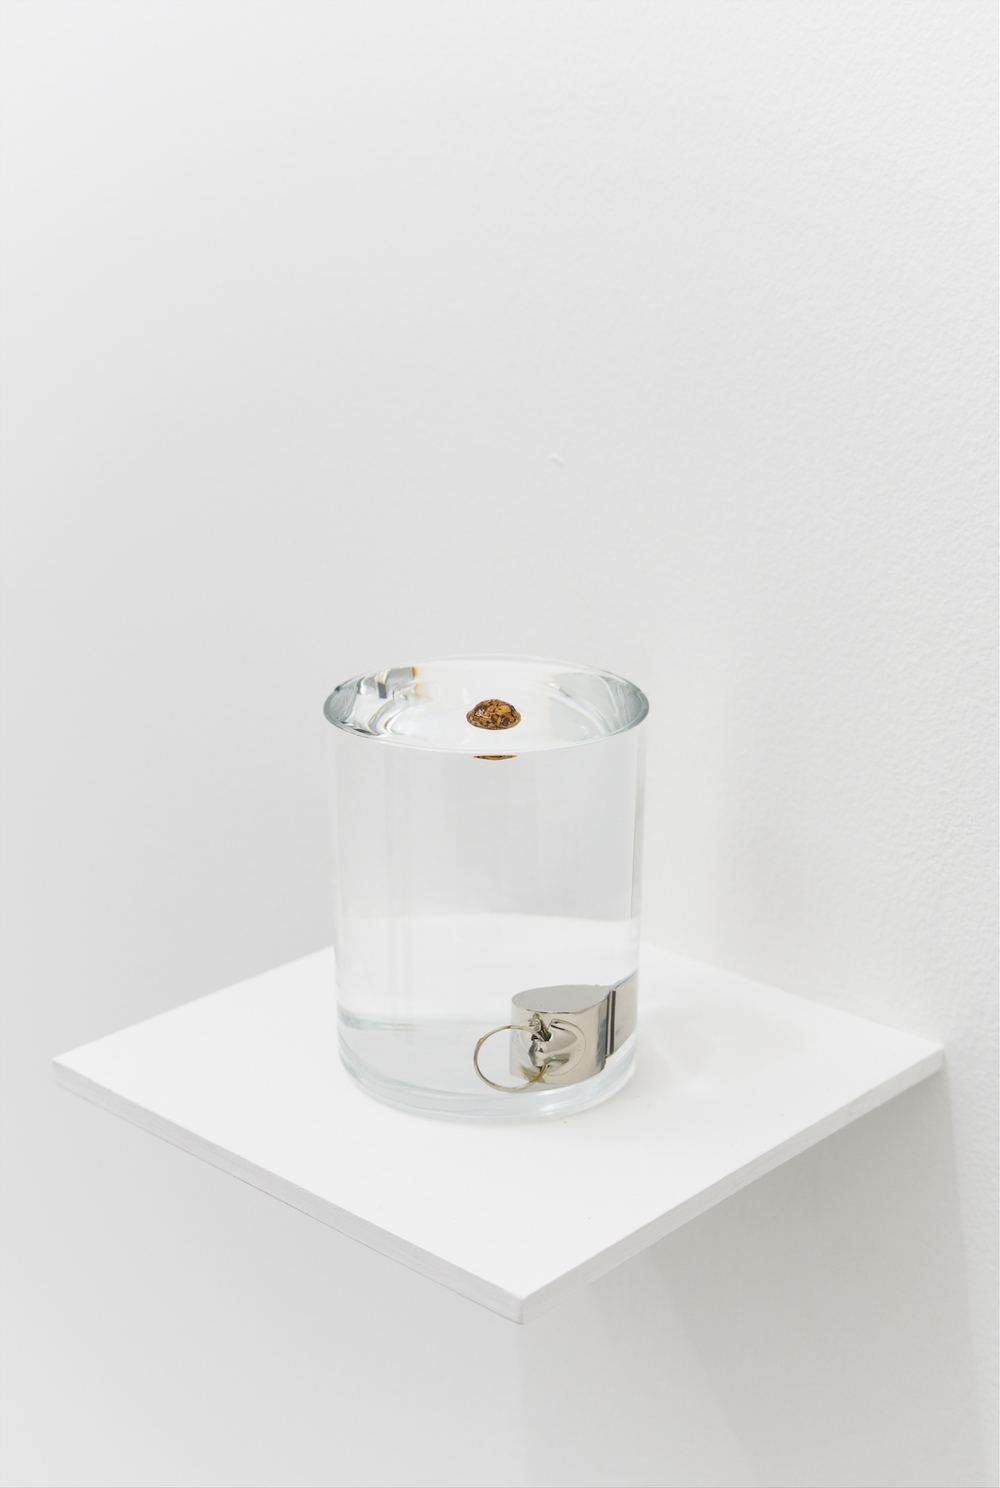 Zarauhie Abdalian, Buoy, 2014, Whistle, cork ball, glass, water, 9.2 x 7.3cm